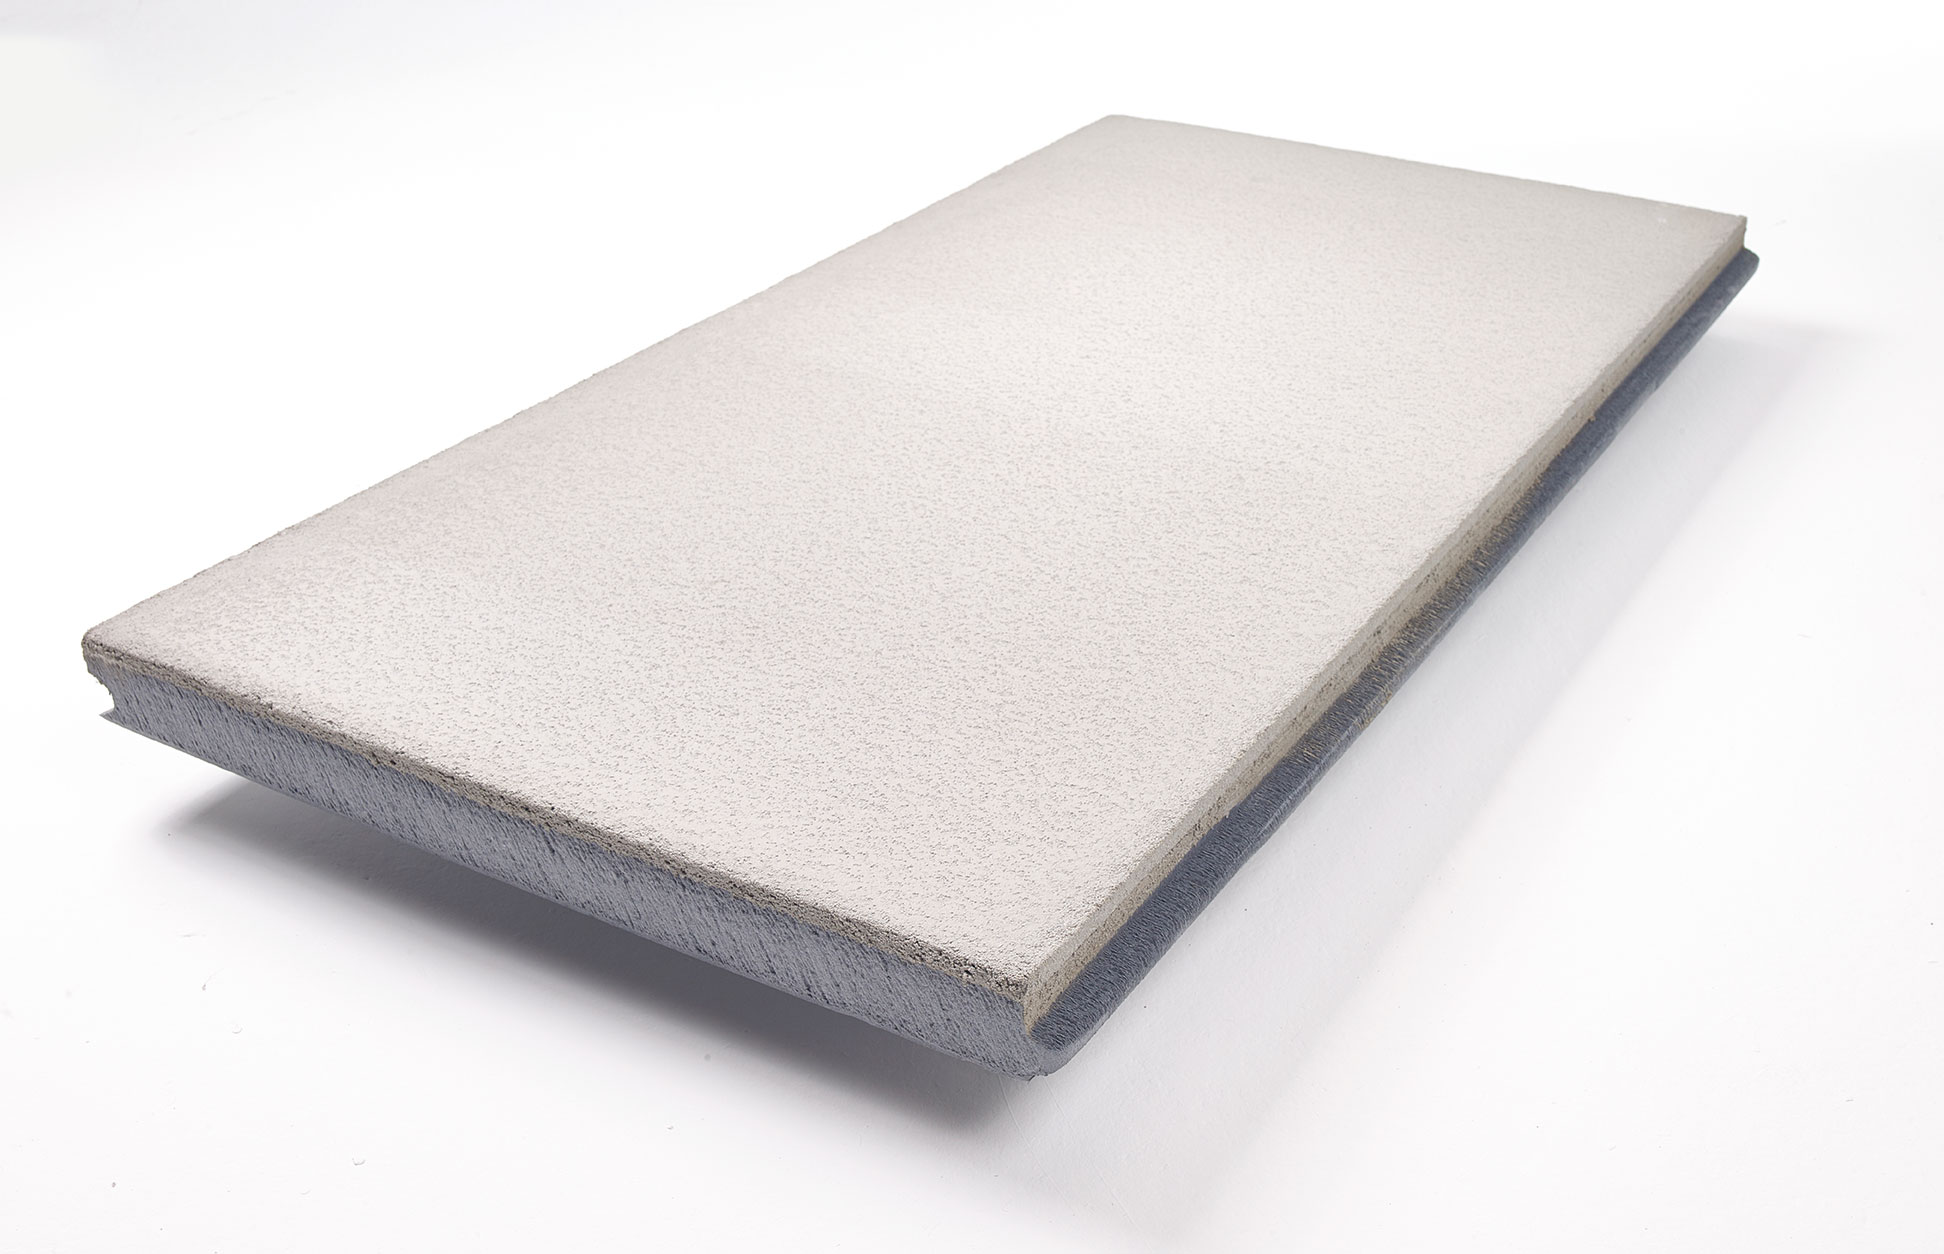 Corcoran Stryofoam extruded polystyrene XPS Insulation